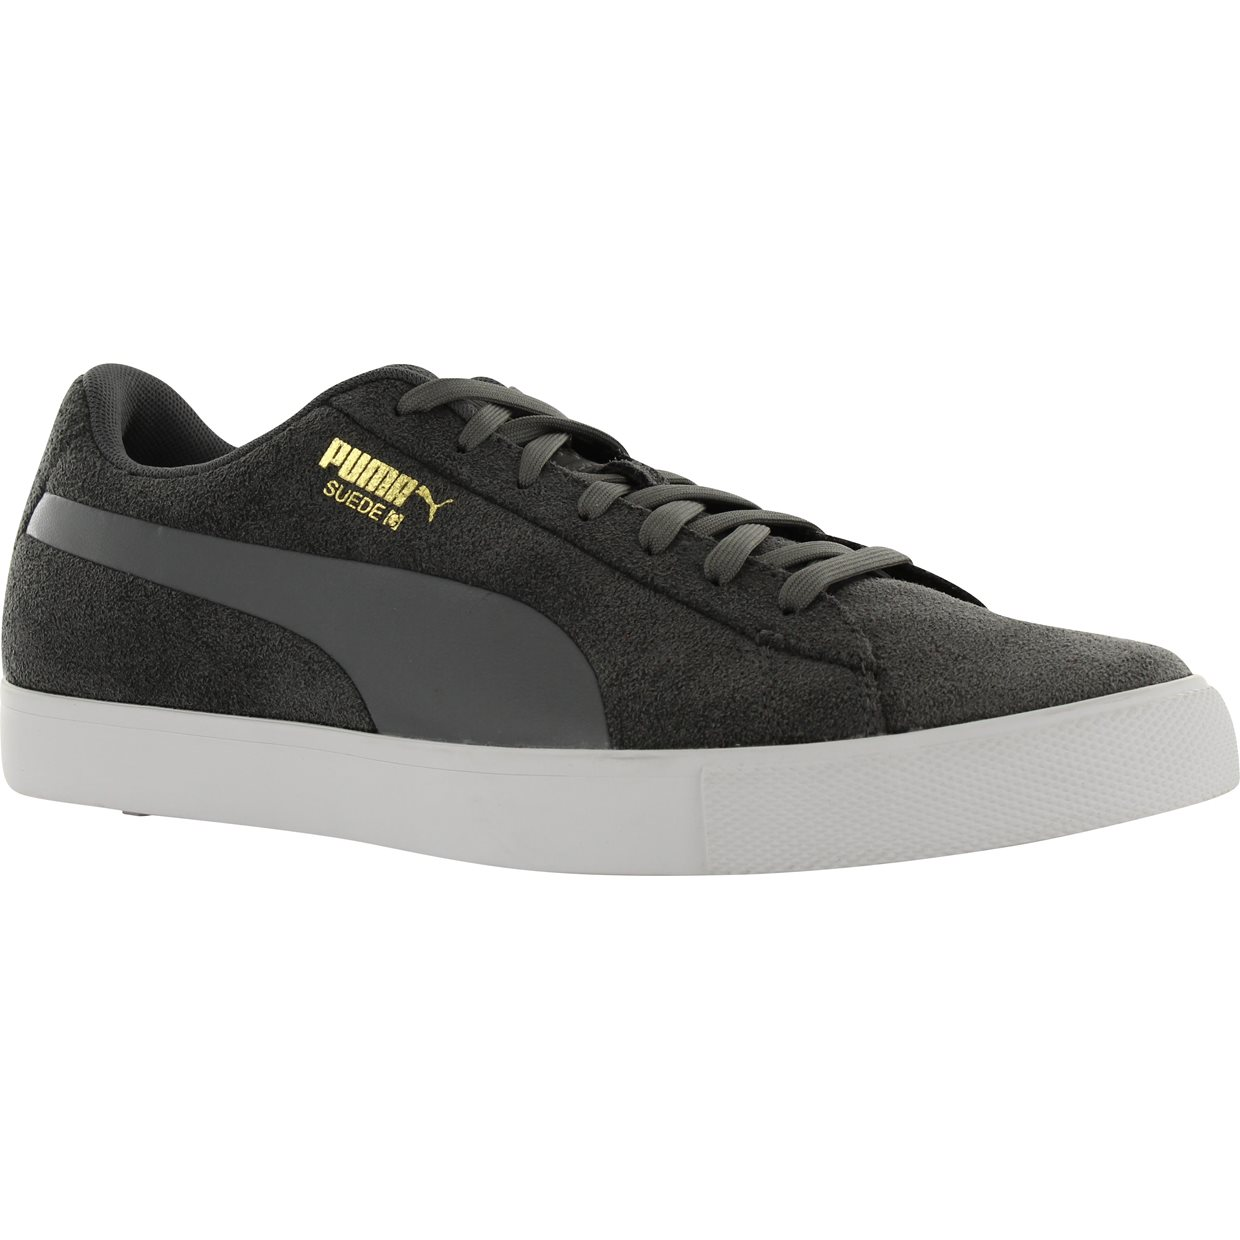 232e0b95fce8 Puma Suede G Spikeless Shoes. Drag 360 Left or Right to View. Alternate  Product Image View 1 ...